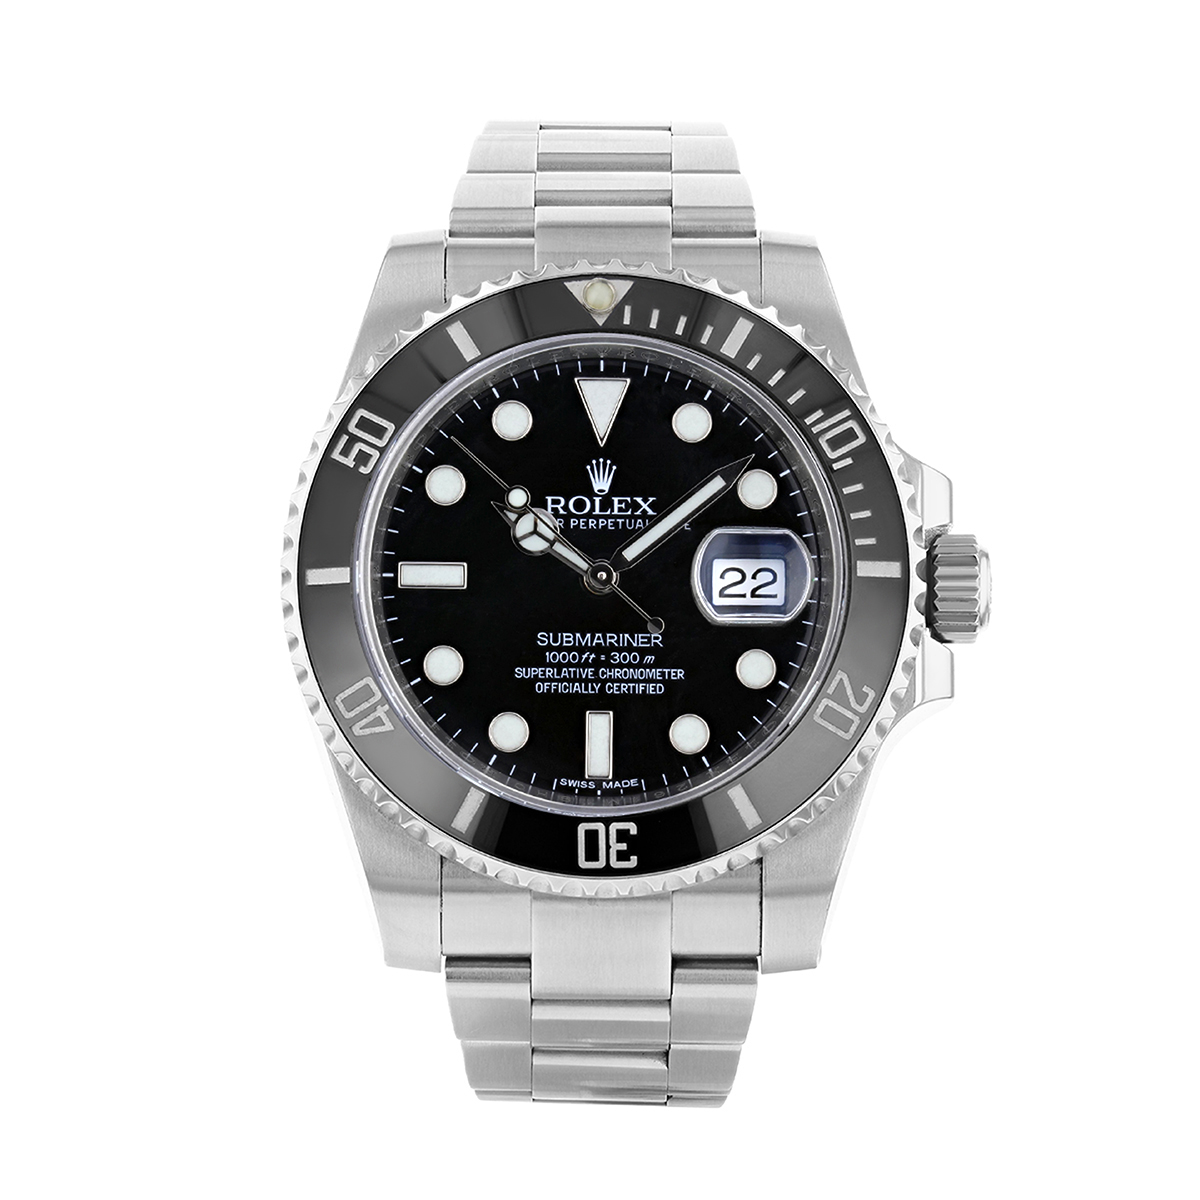 Rolex Submariner 40MM Black Date Dial Stainless Steel | 116610LN - 2014